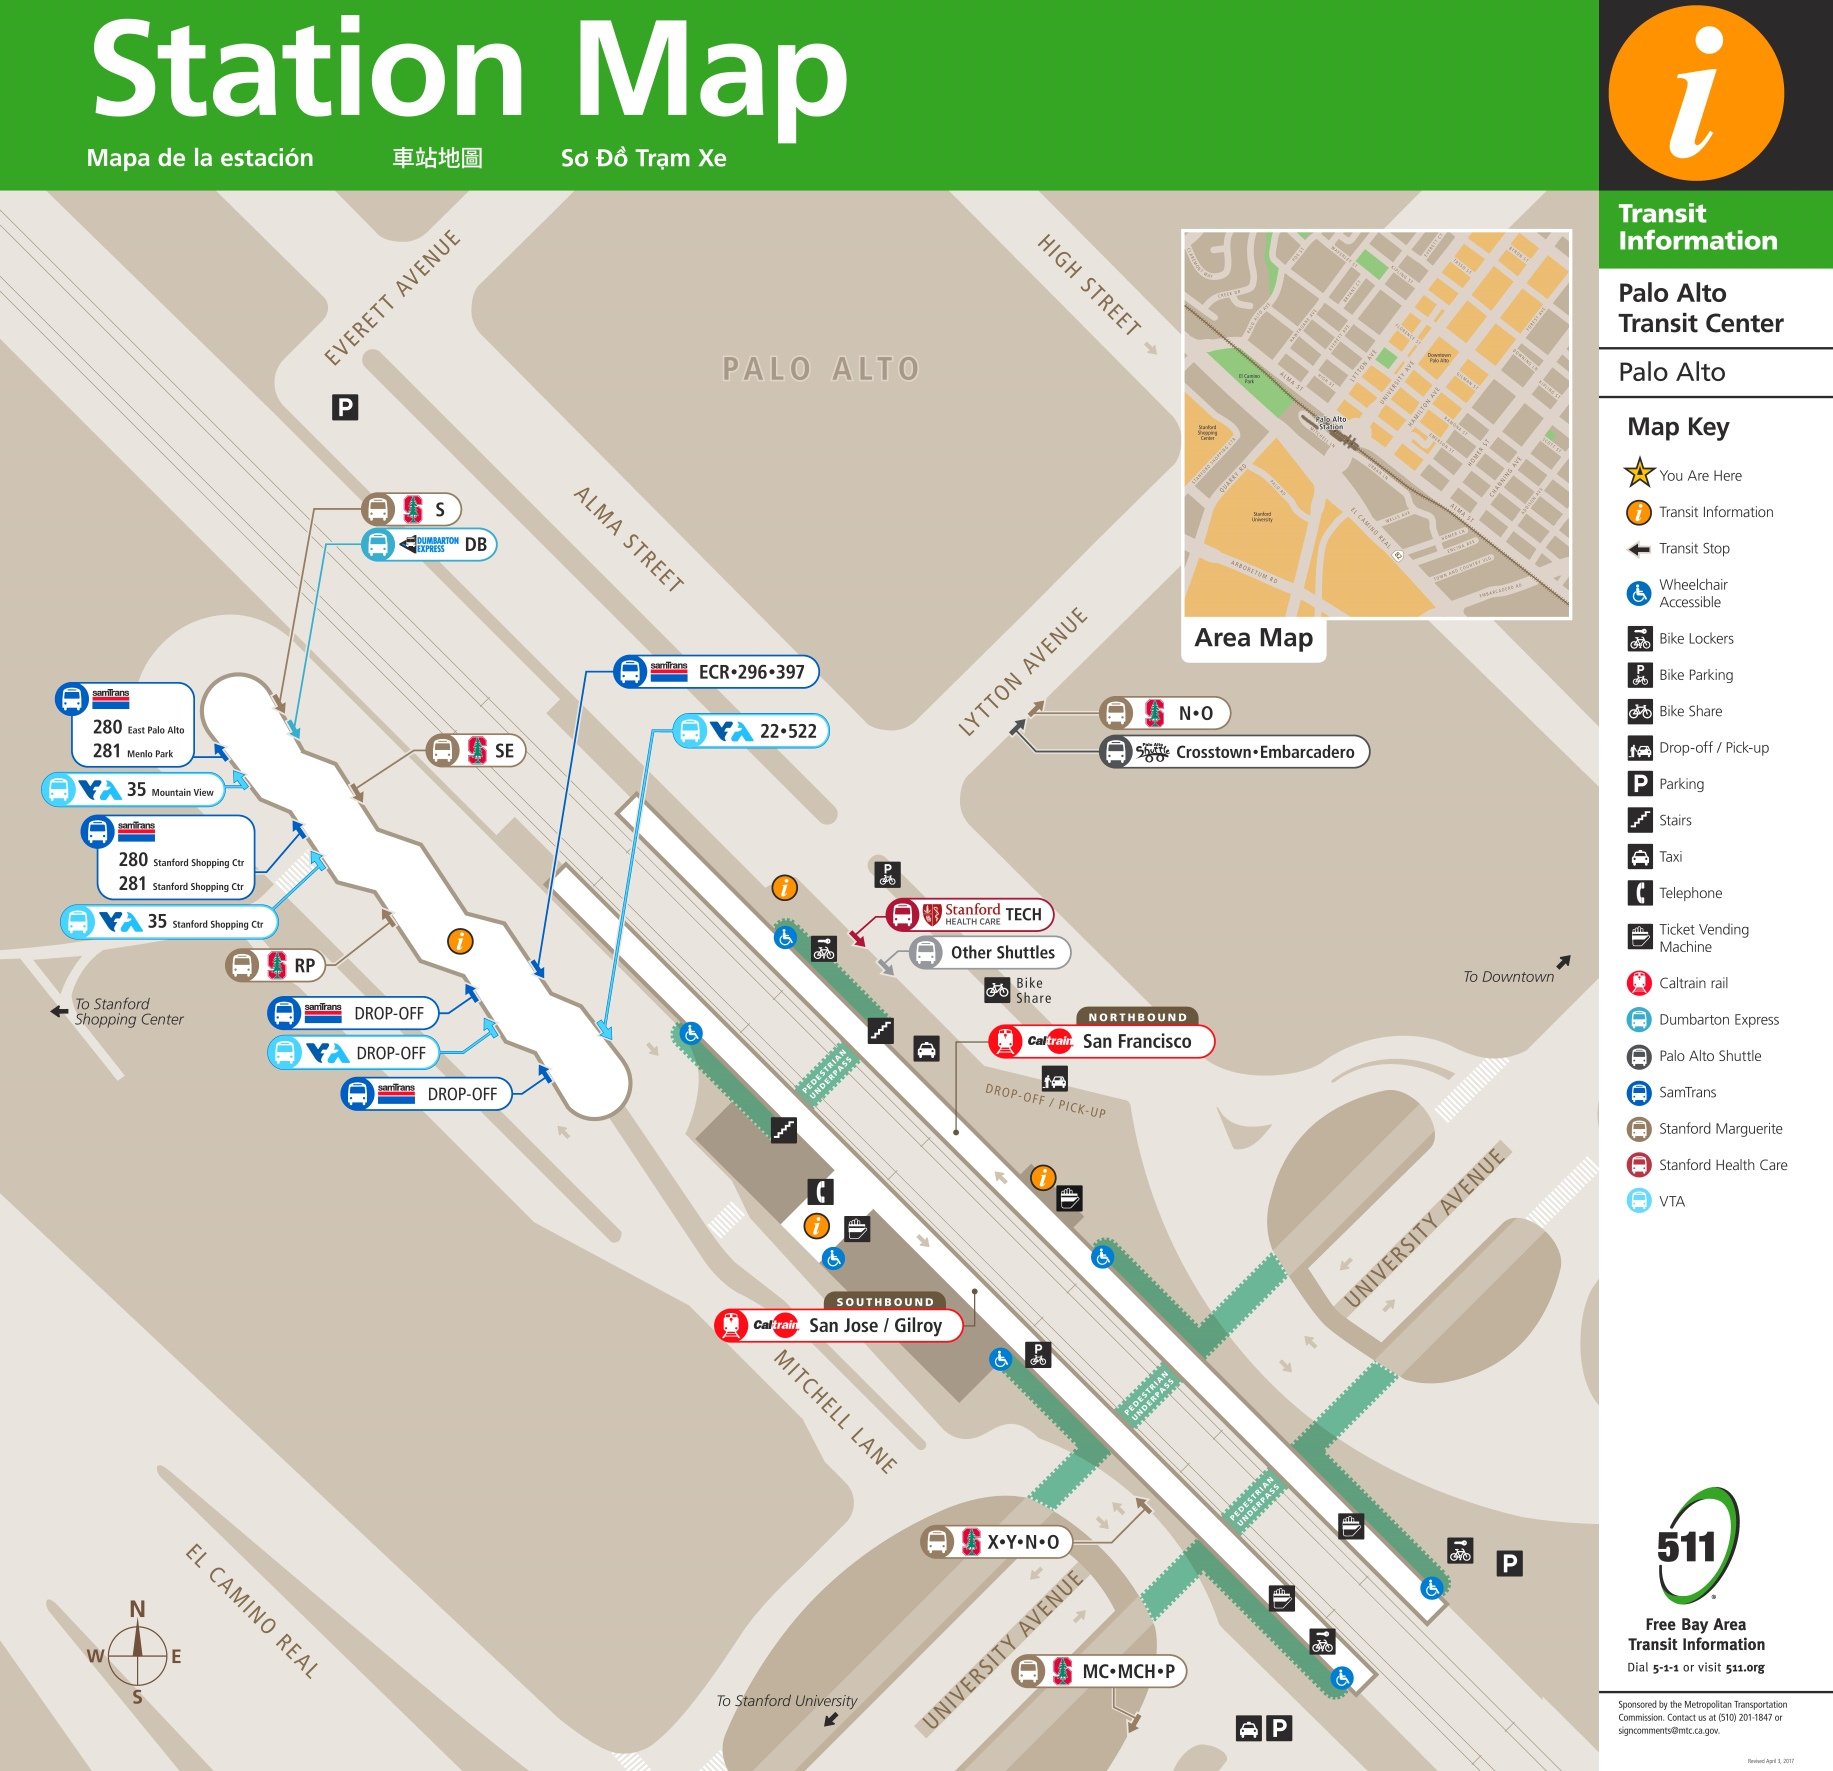 Palo Alto station map